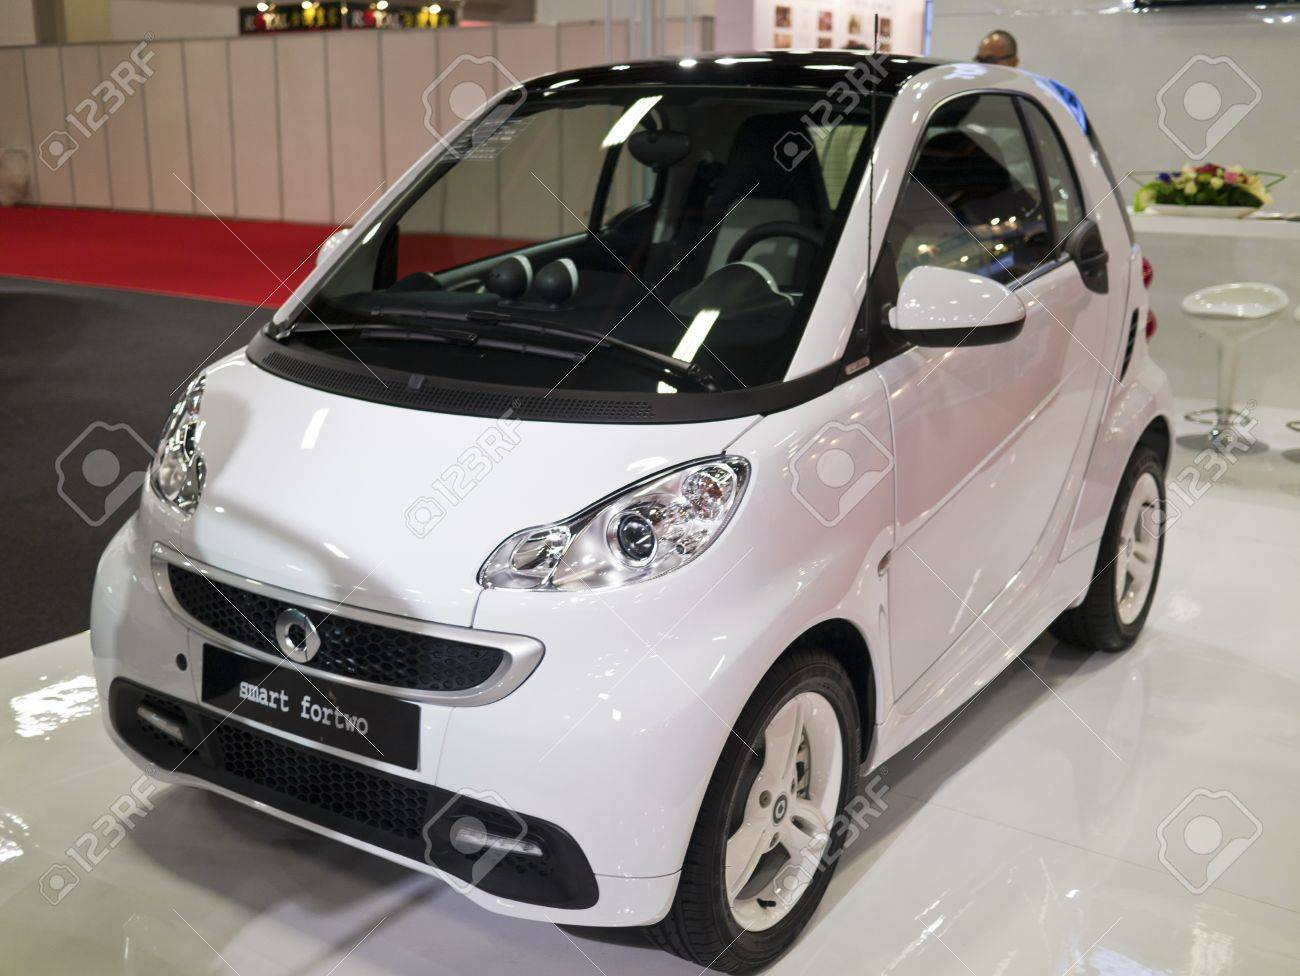 Mercedes Smart Car >> Taipei Taiwan December 21 New Car Of Mercedes Benz Smart Fortwo